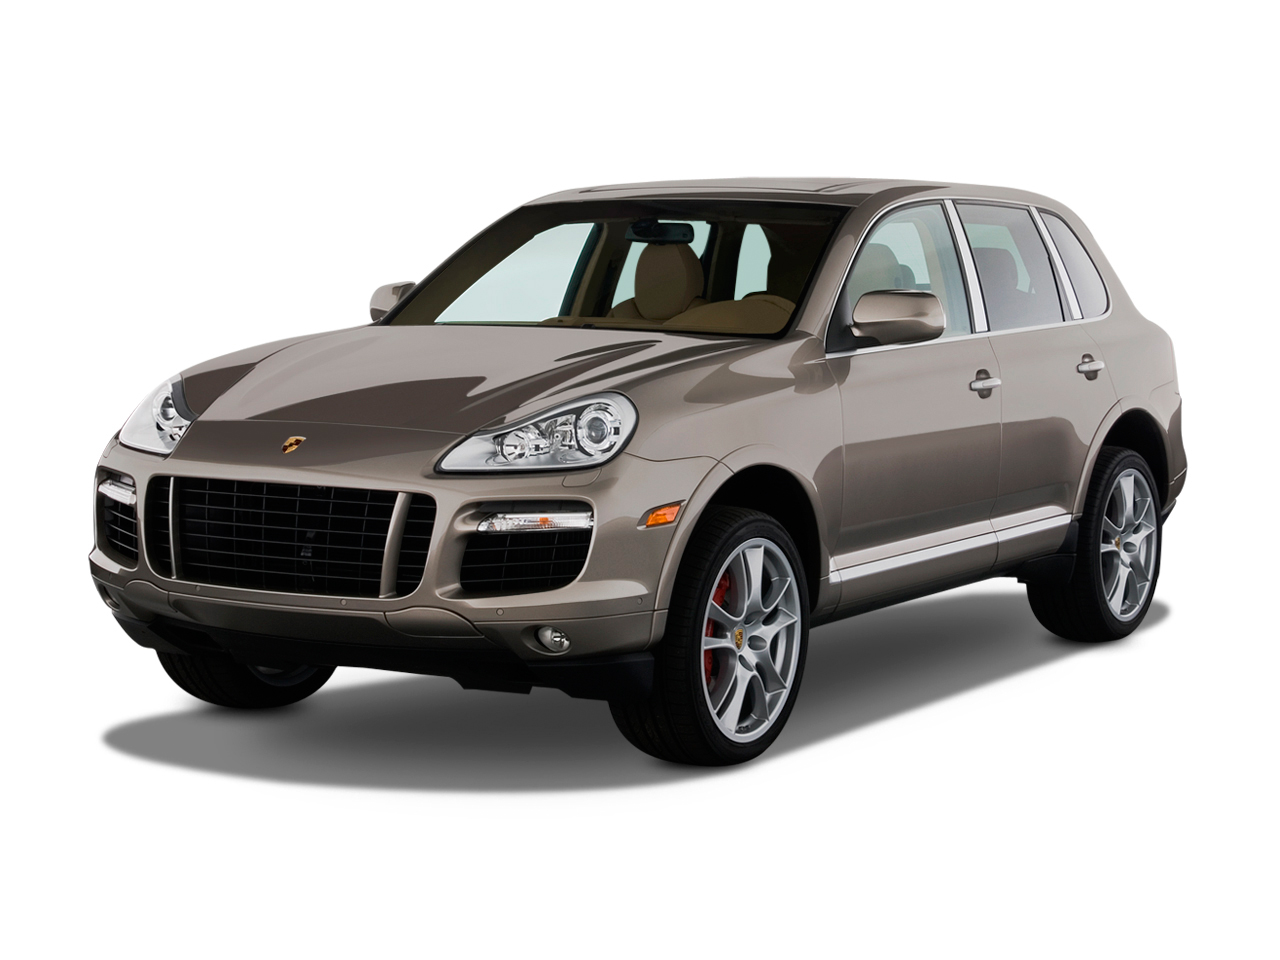 2010 Porsche Cayenne Review Ratings Specs Prices And